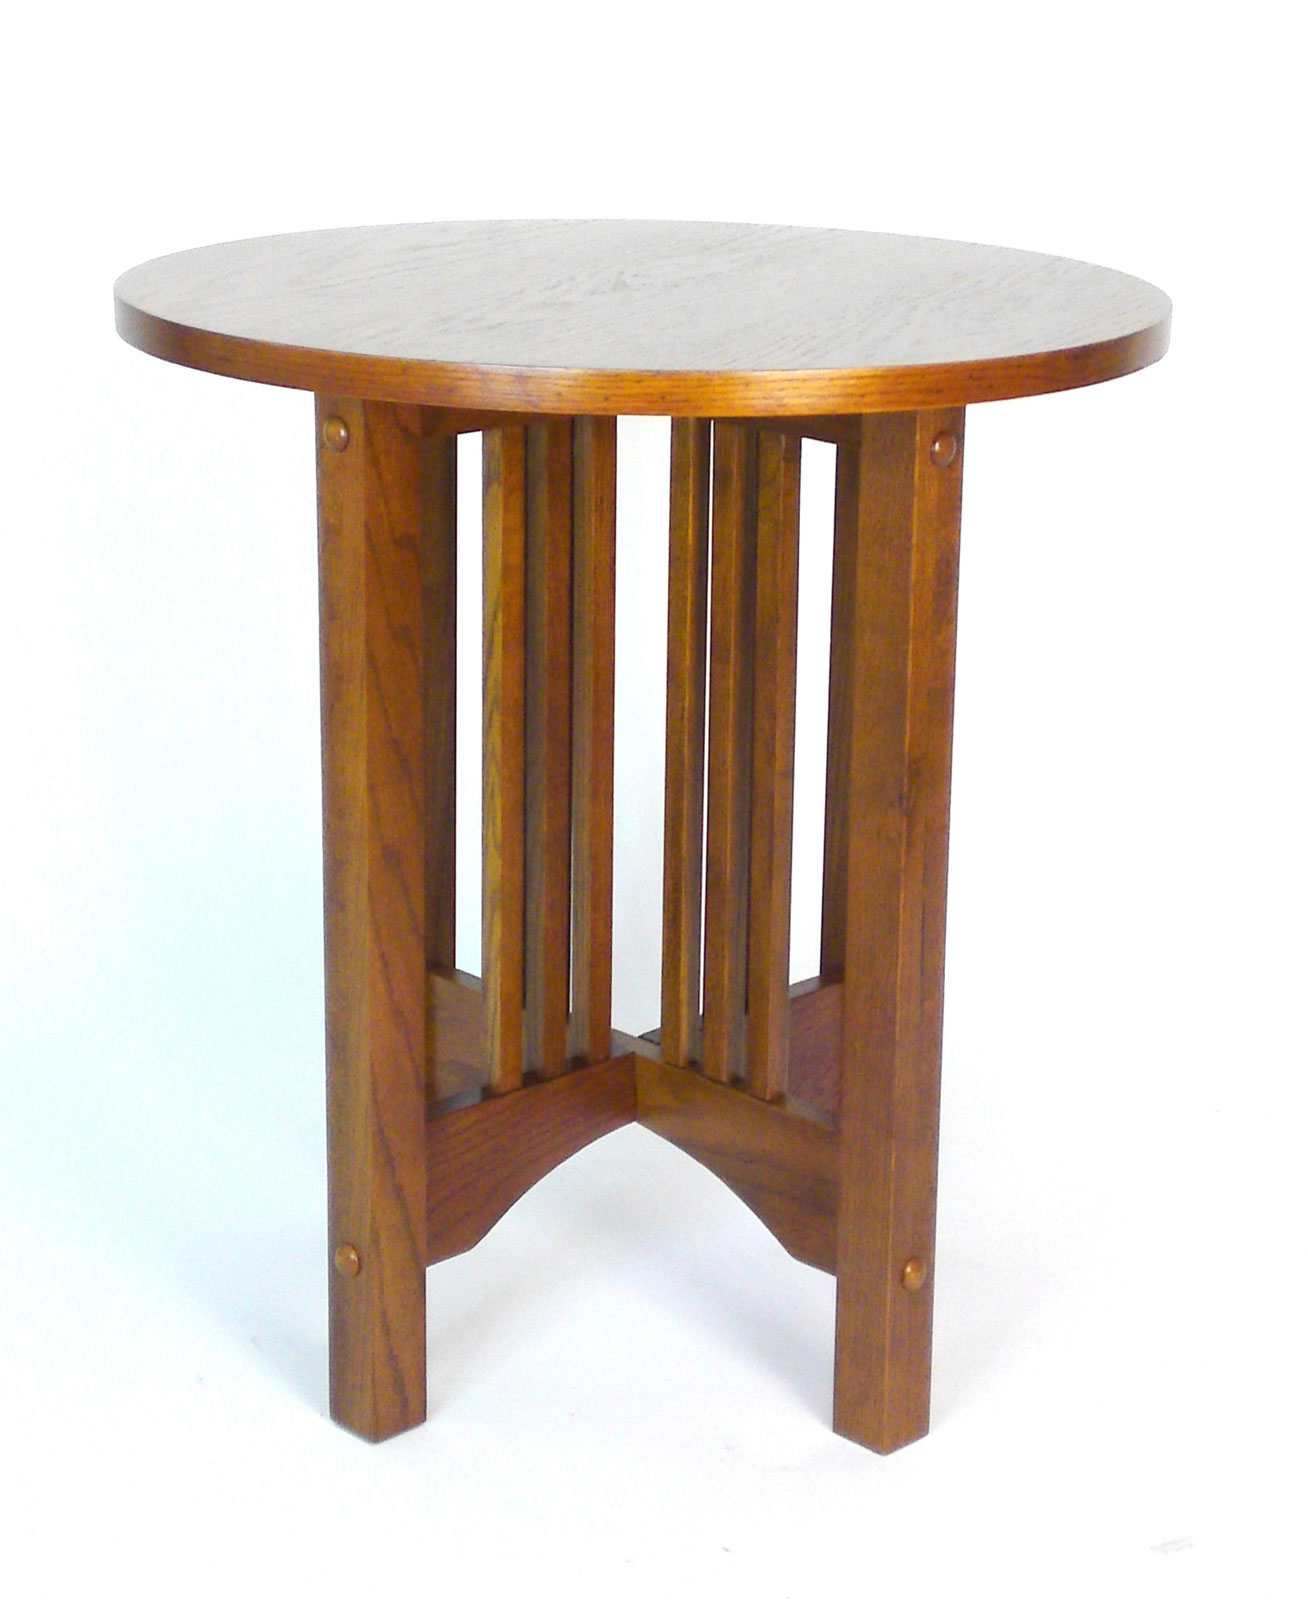 ... Table By Passport Accent, Mission Style Oak Round Table By Wayborn